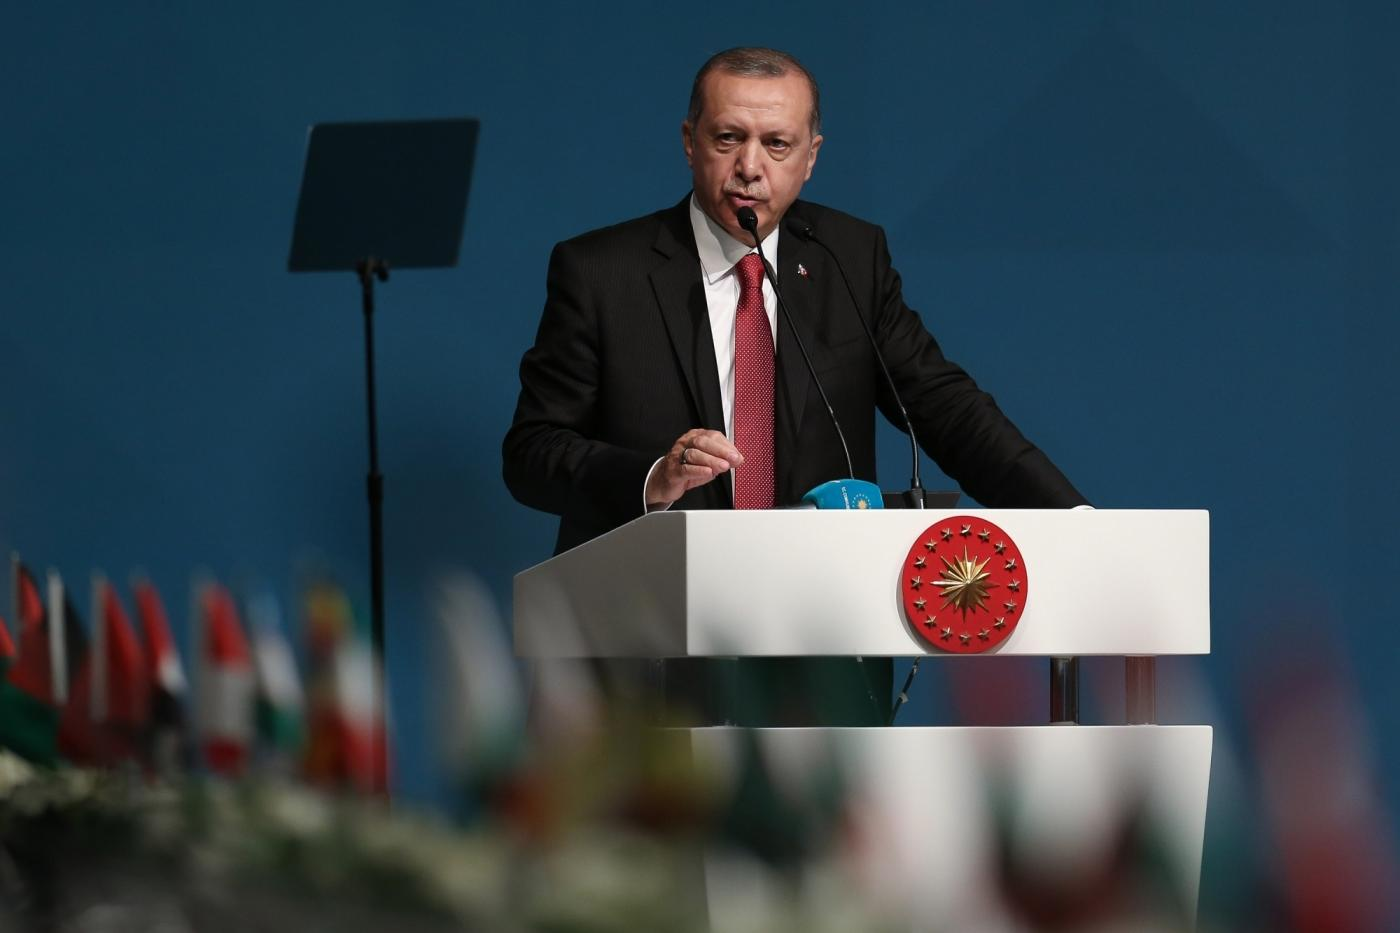 "ISTANBUL, May 19, 2018 (Xinhua) -- Turkish President Recep Tayyip Erdogan makes a speech at an extraordinary summit of the Organization of Islamic Cooperation (OIC) in Istanbul, Turkey, on May 18, 2018. The 57-member OIC on Friday vowed to take ""all necessary steps"" to prevent other countries from following the U.S. example of moving their Israel embassies to Jerusalem. (Xinhua/Anadolu Agency/IANS) by ."